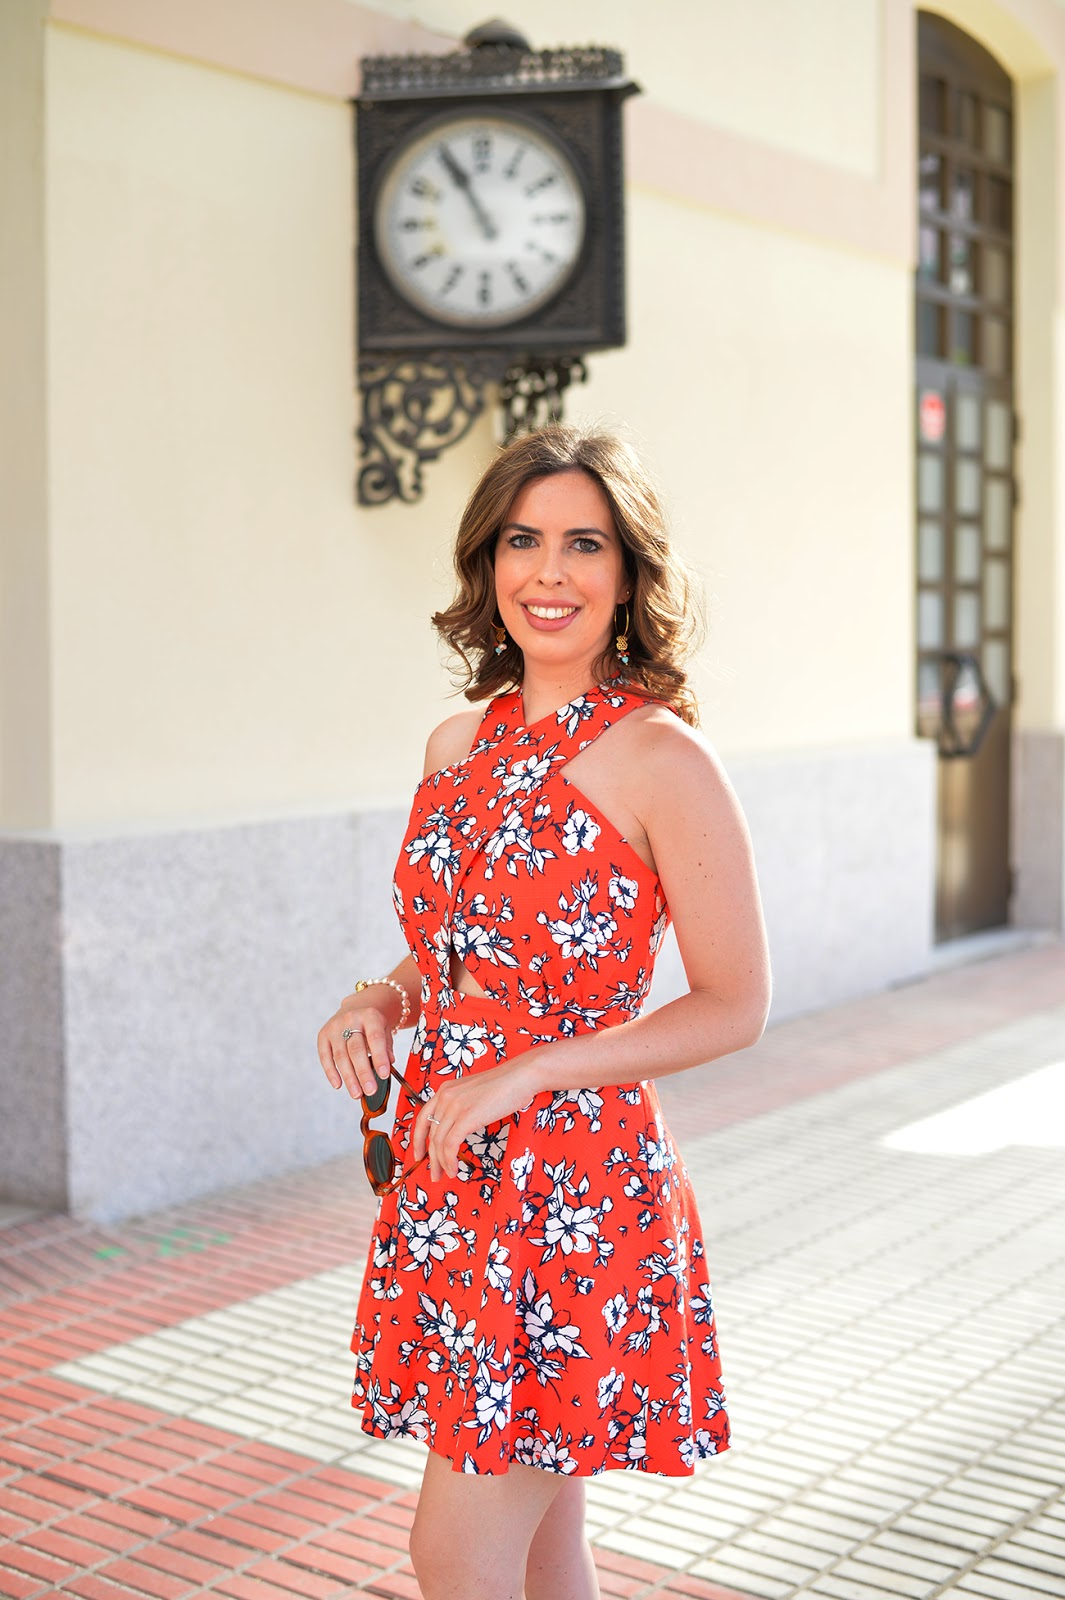 red floral summer dress abercrombie and fitch fashion blogger